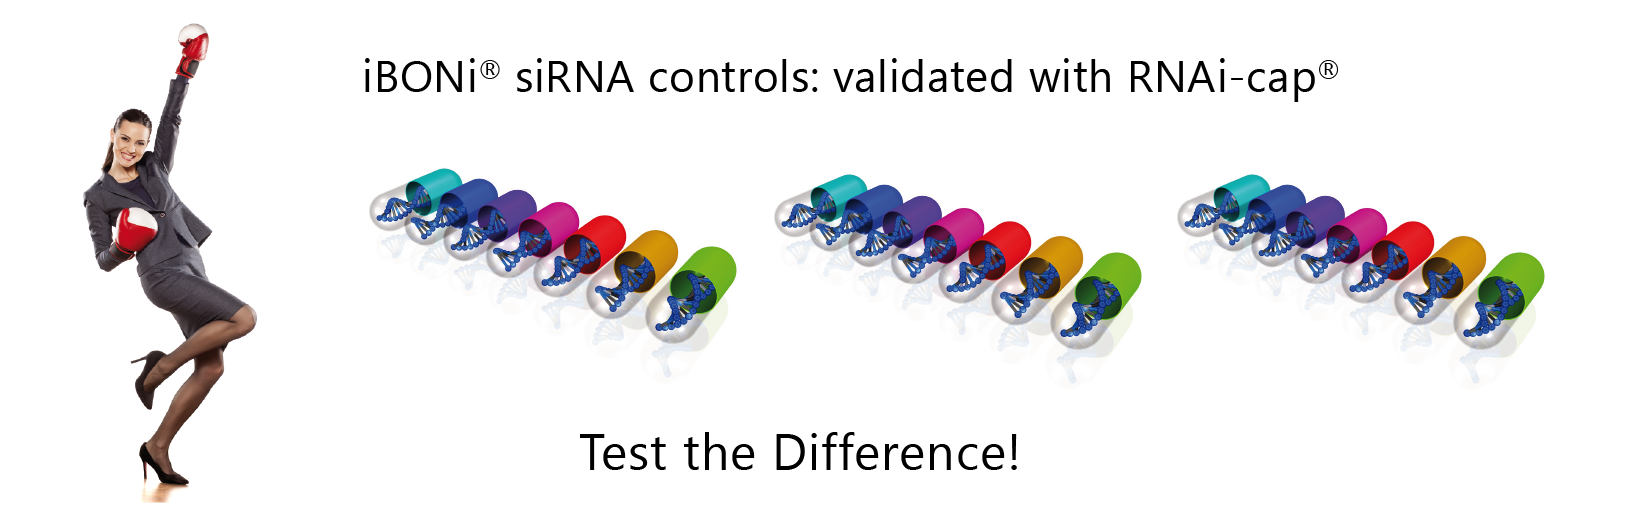 iBONi siRNA controls validated with RNAi-cap